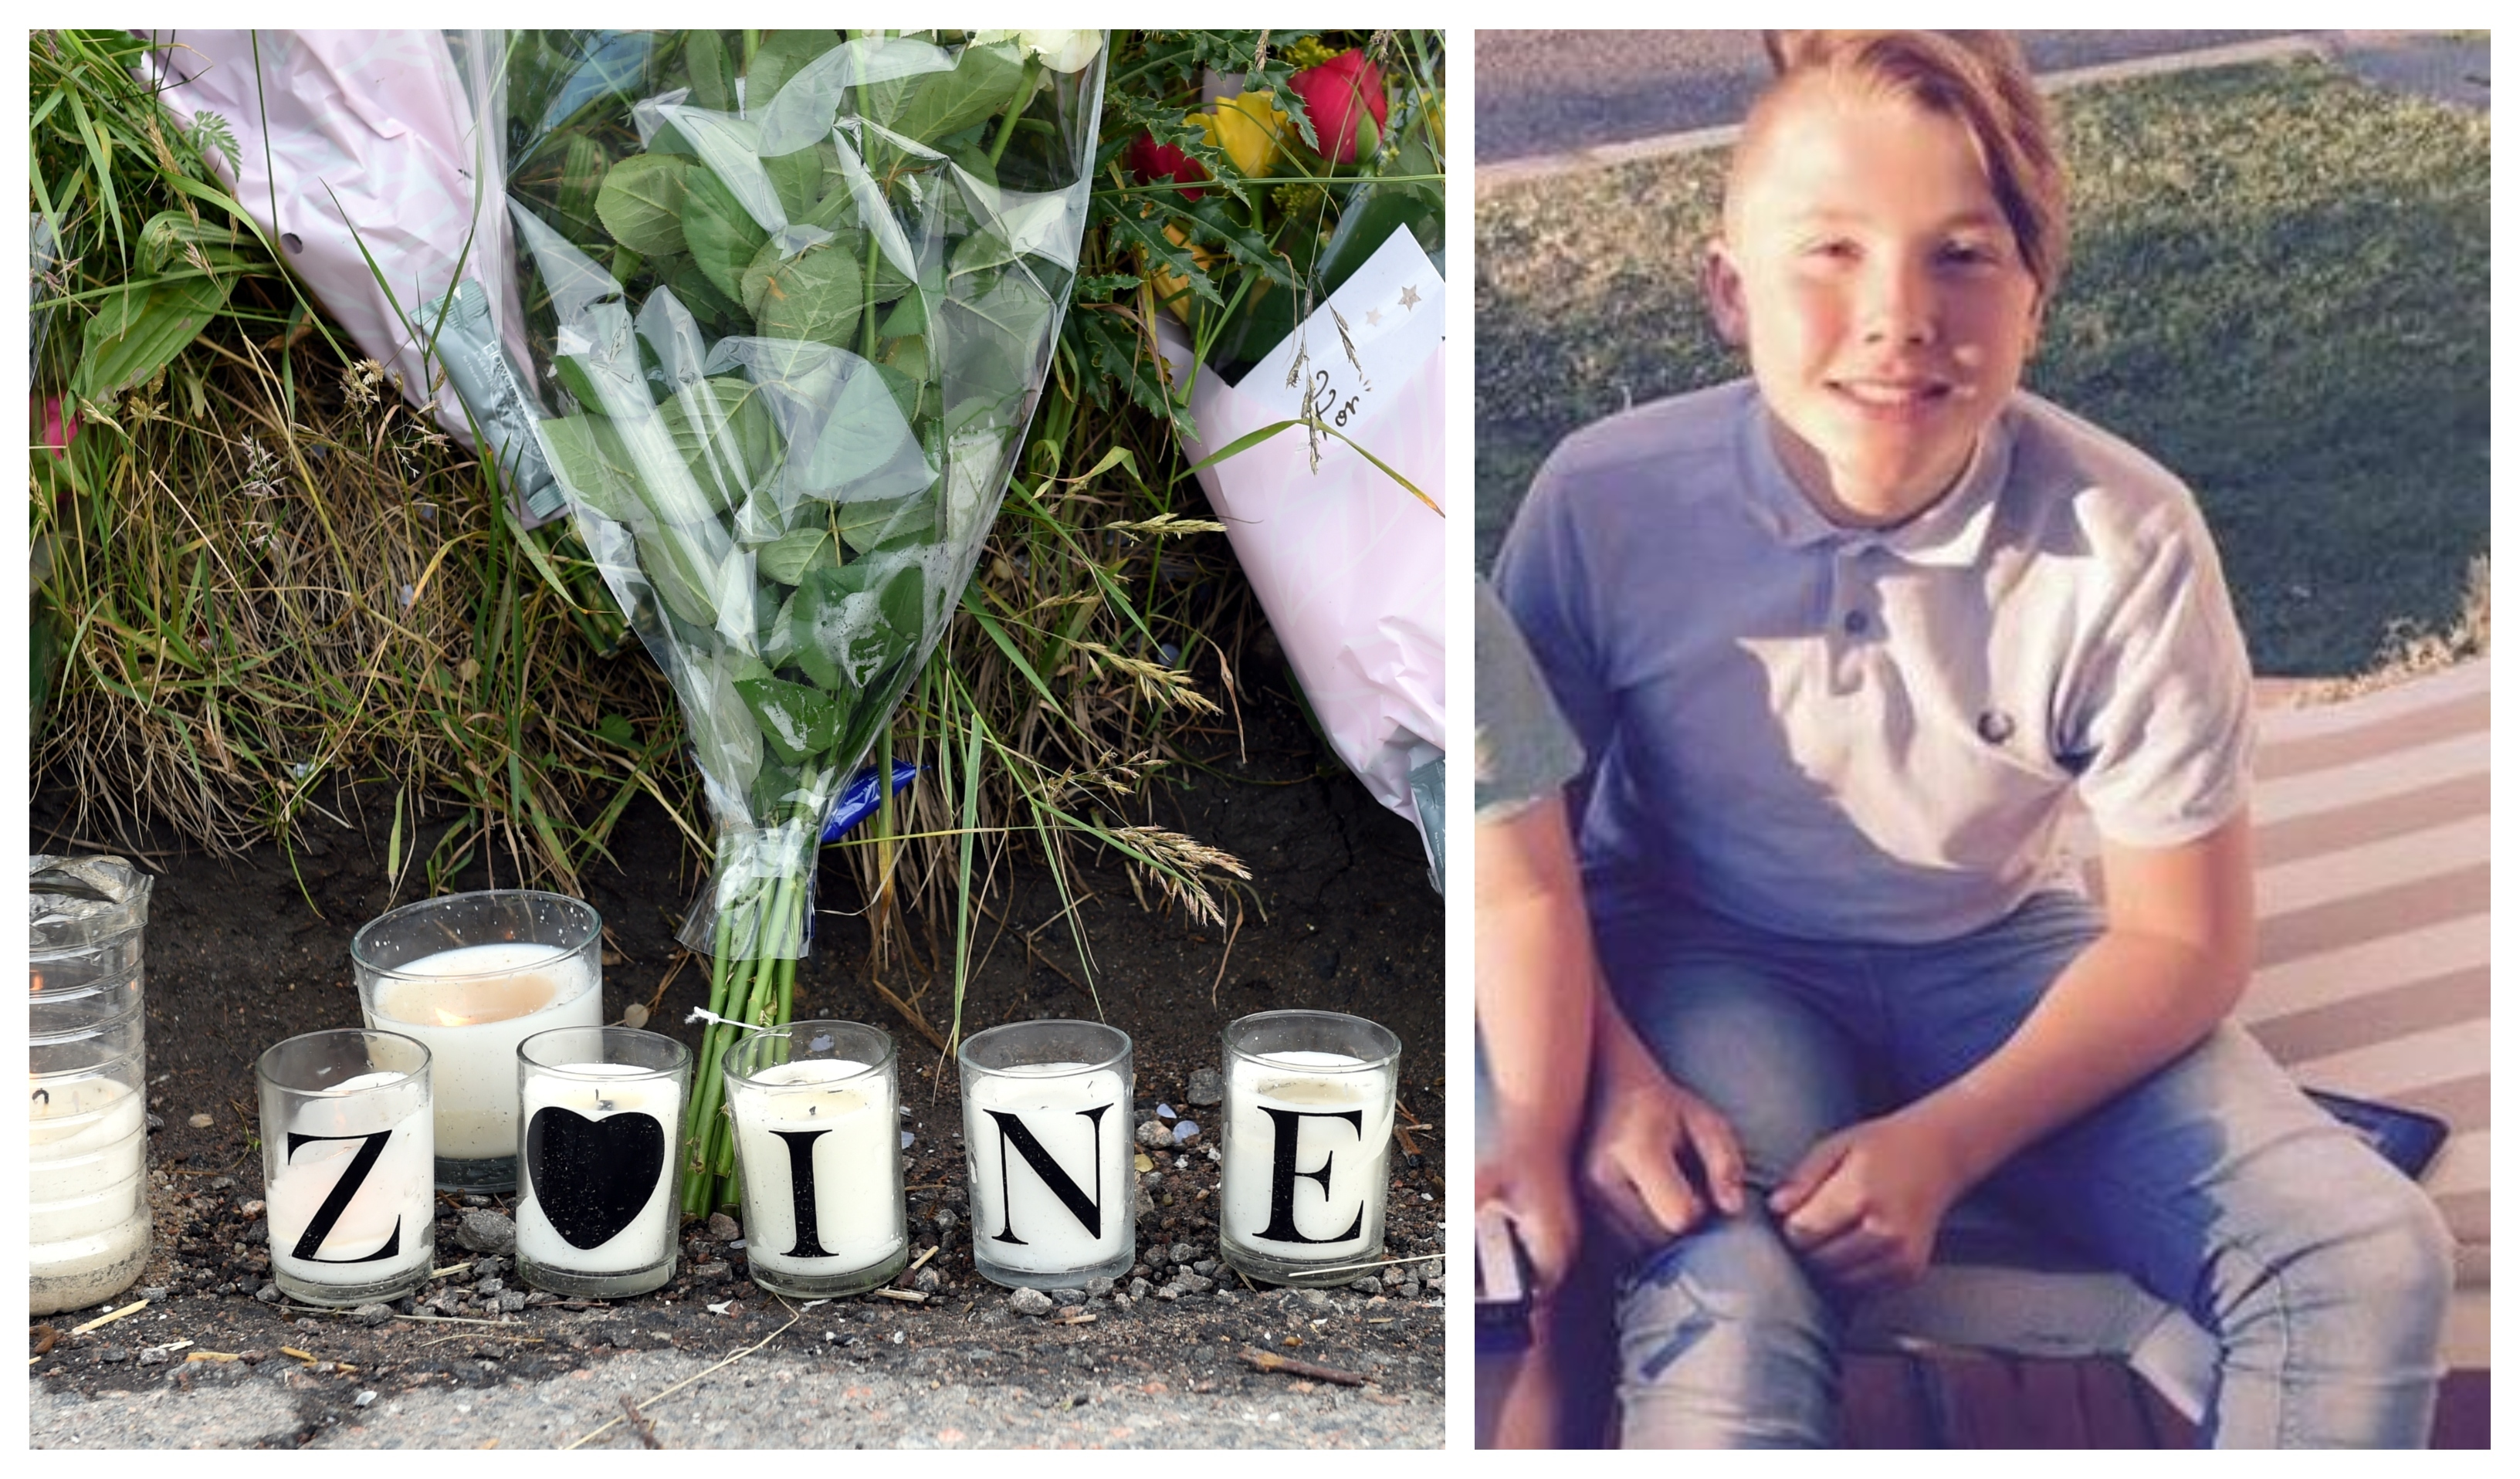 Zaine Grieve, right, died after falling ill in the street